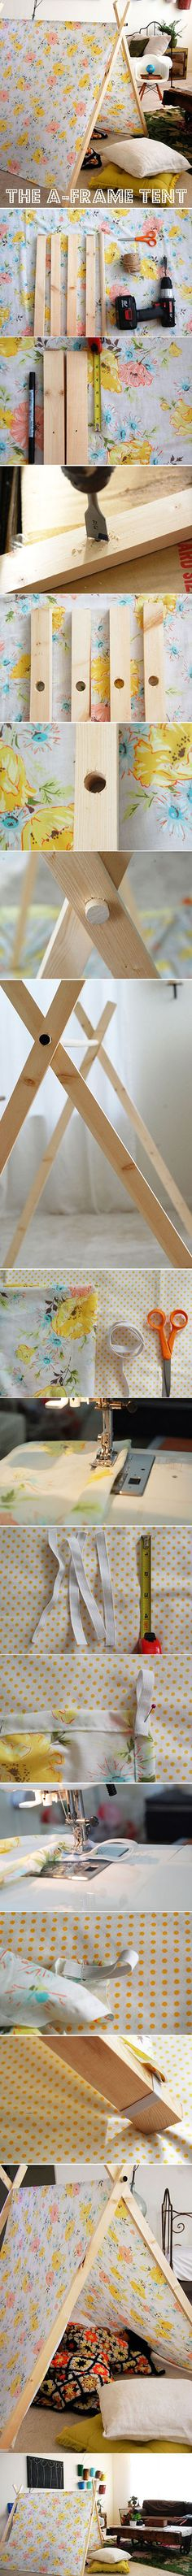 Diy A-frame Tent | DIY  Crafts Tutorials